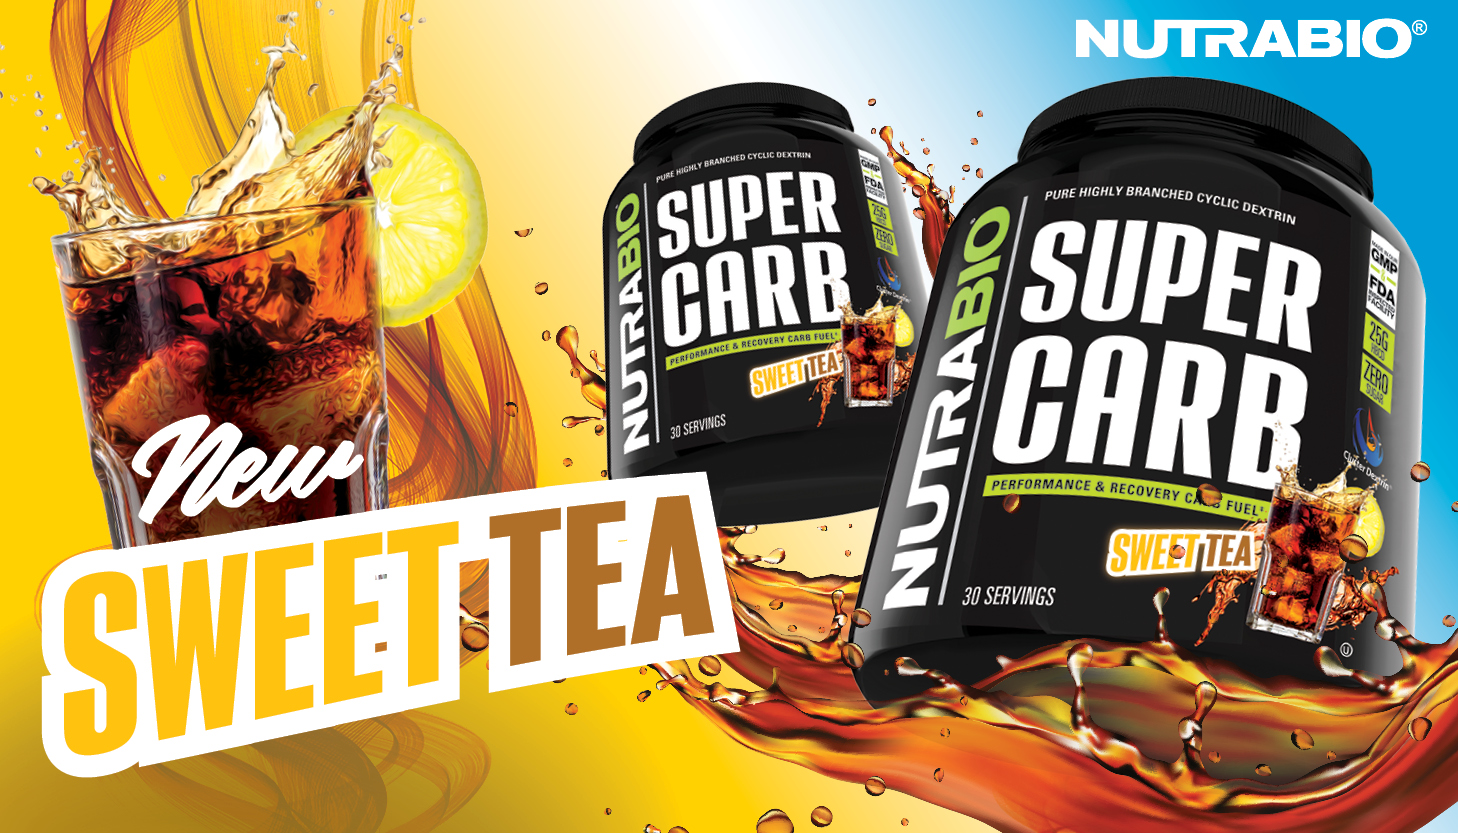 NutraBio Super Carb Now Comes In Refreshing Sweet Tea